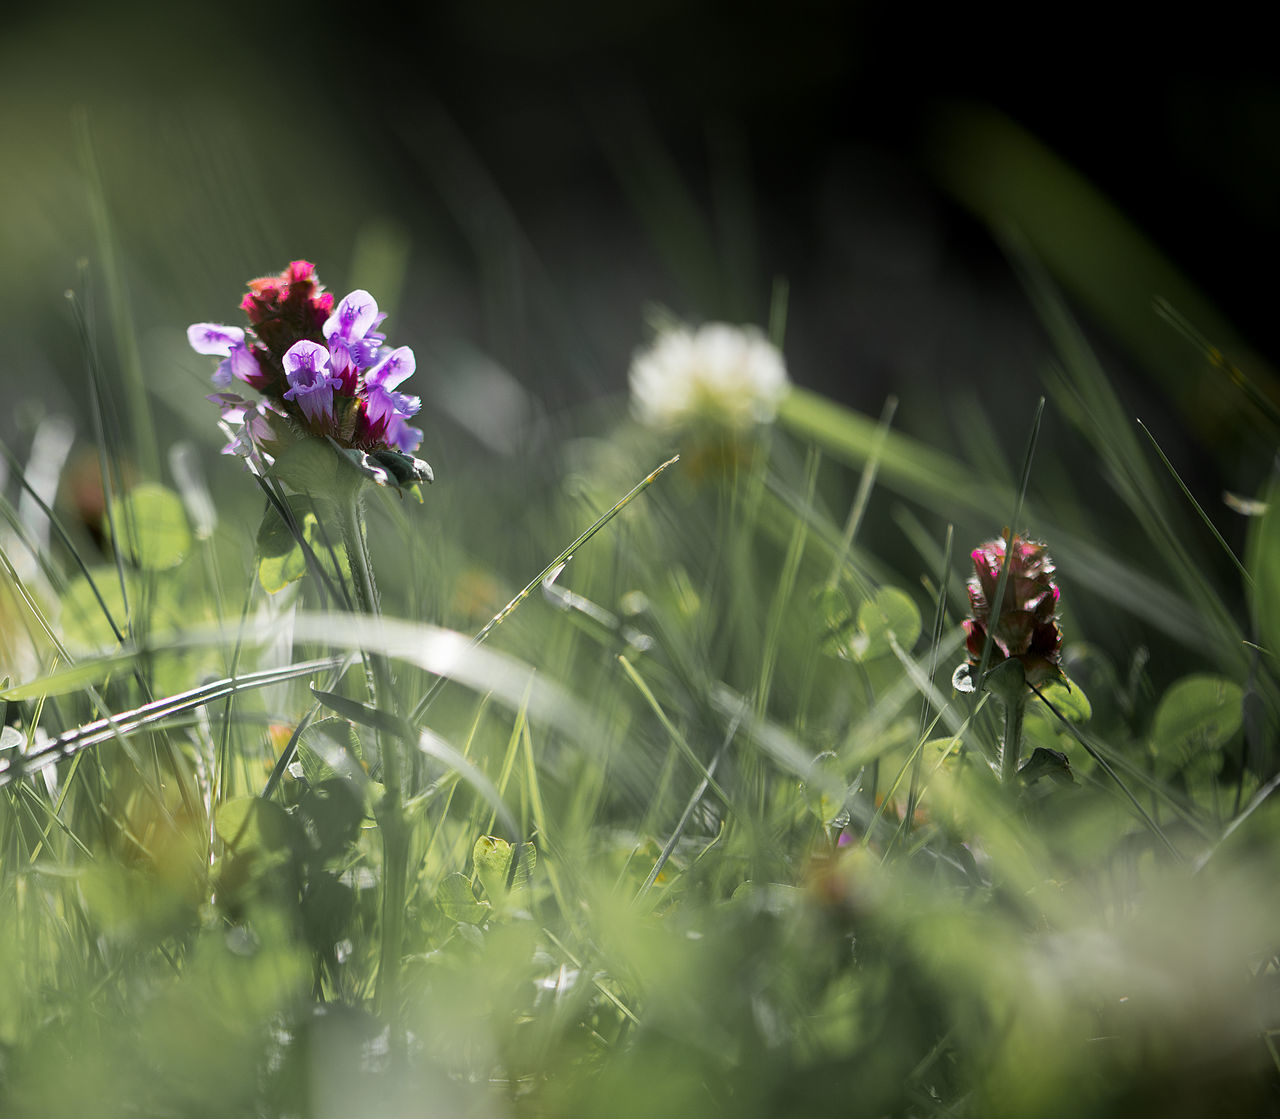 Animal Themes Art ArtWork Beauty In Nature Beauty In Nature Close-up Clover Clovers  Day EyeEmNewHere Fantasy Flower Fragility Freshness Growth Meadow Nature Nature Nature Backgrounds No People Outdoors Plant Spring Summer The Baltics